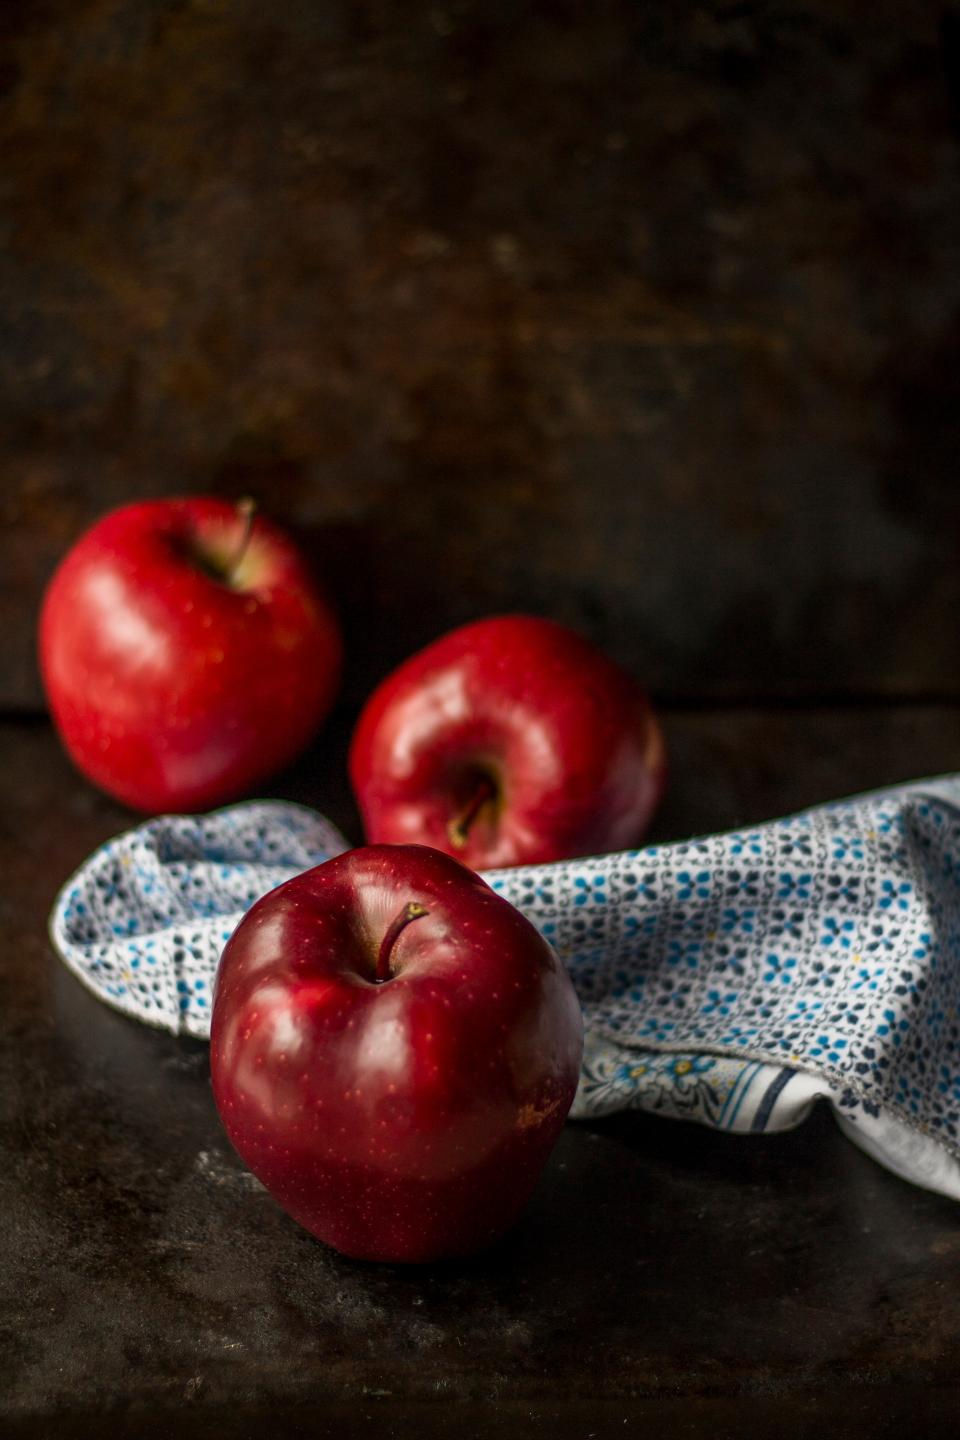 red apple fruit food juicy healthy cloth